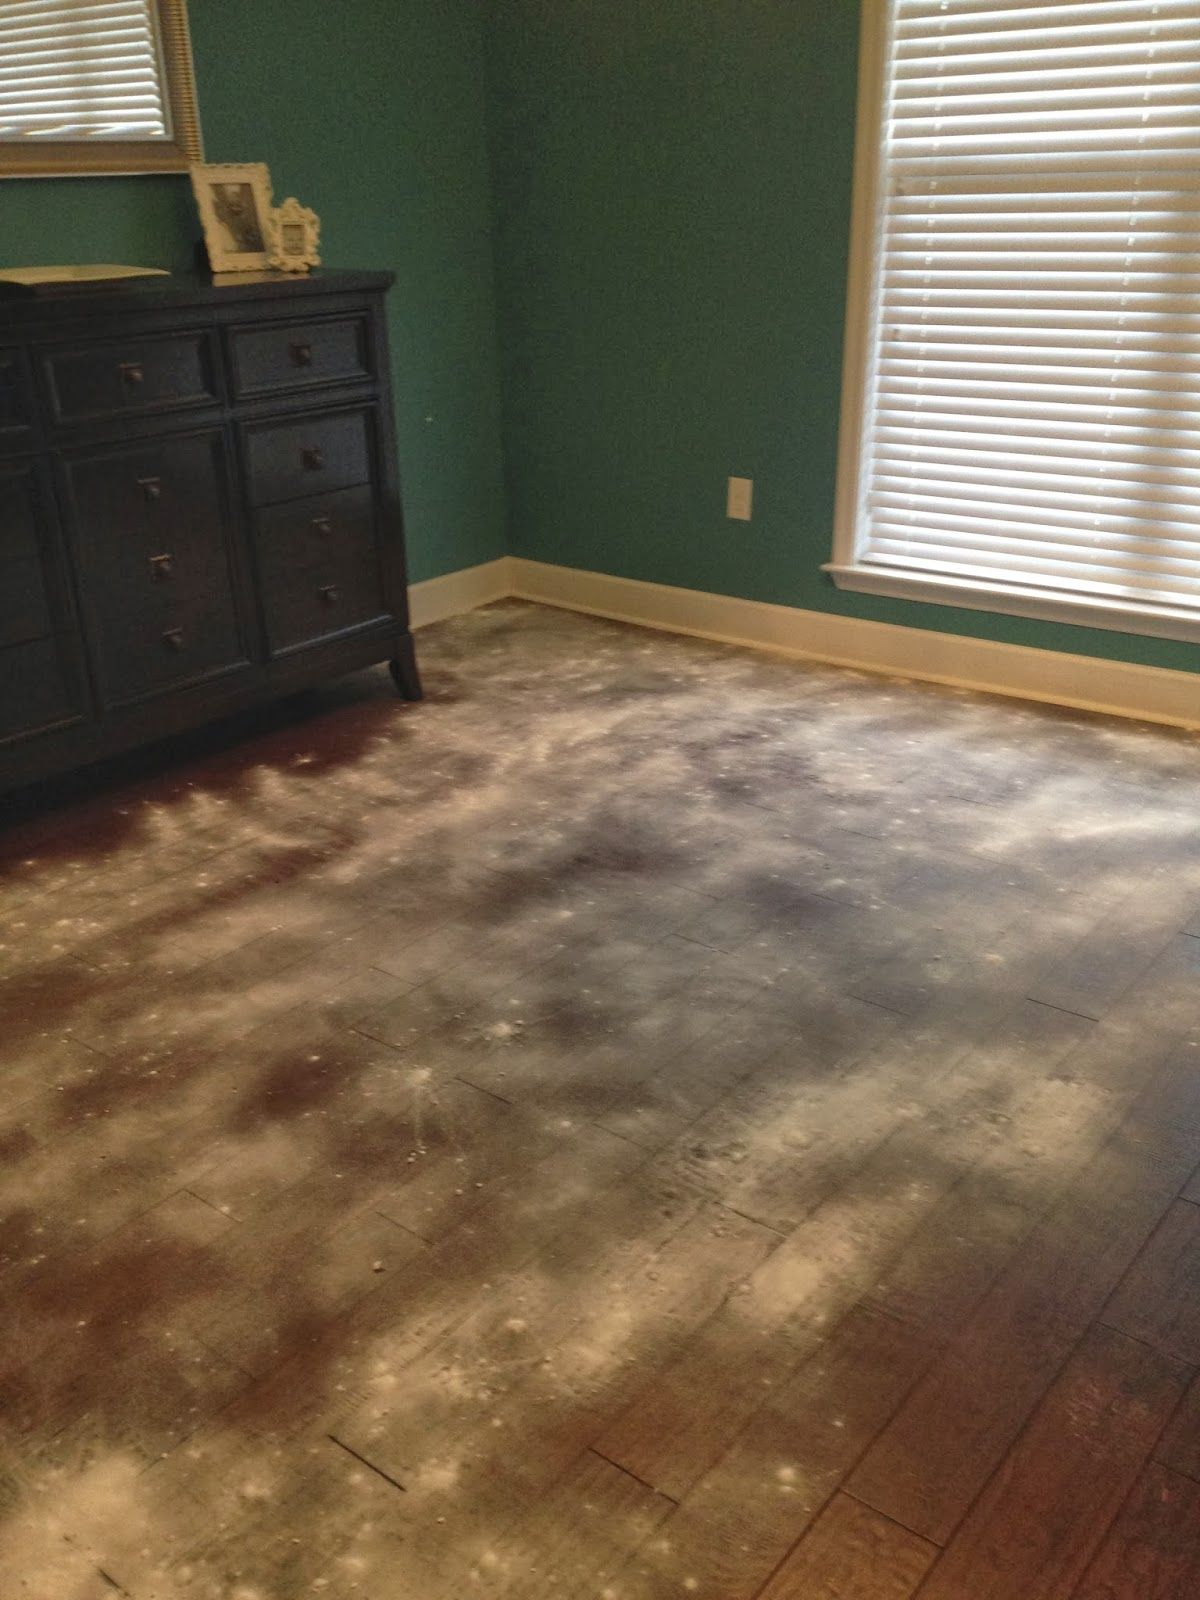 Removing Pet Stains from Hardwood Floors Clean hardwood